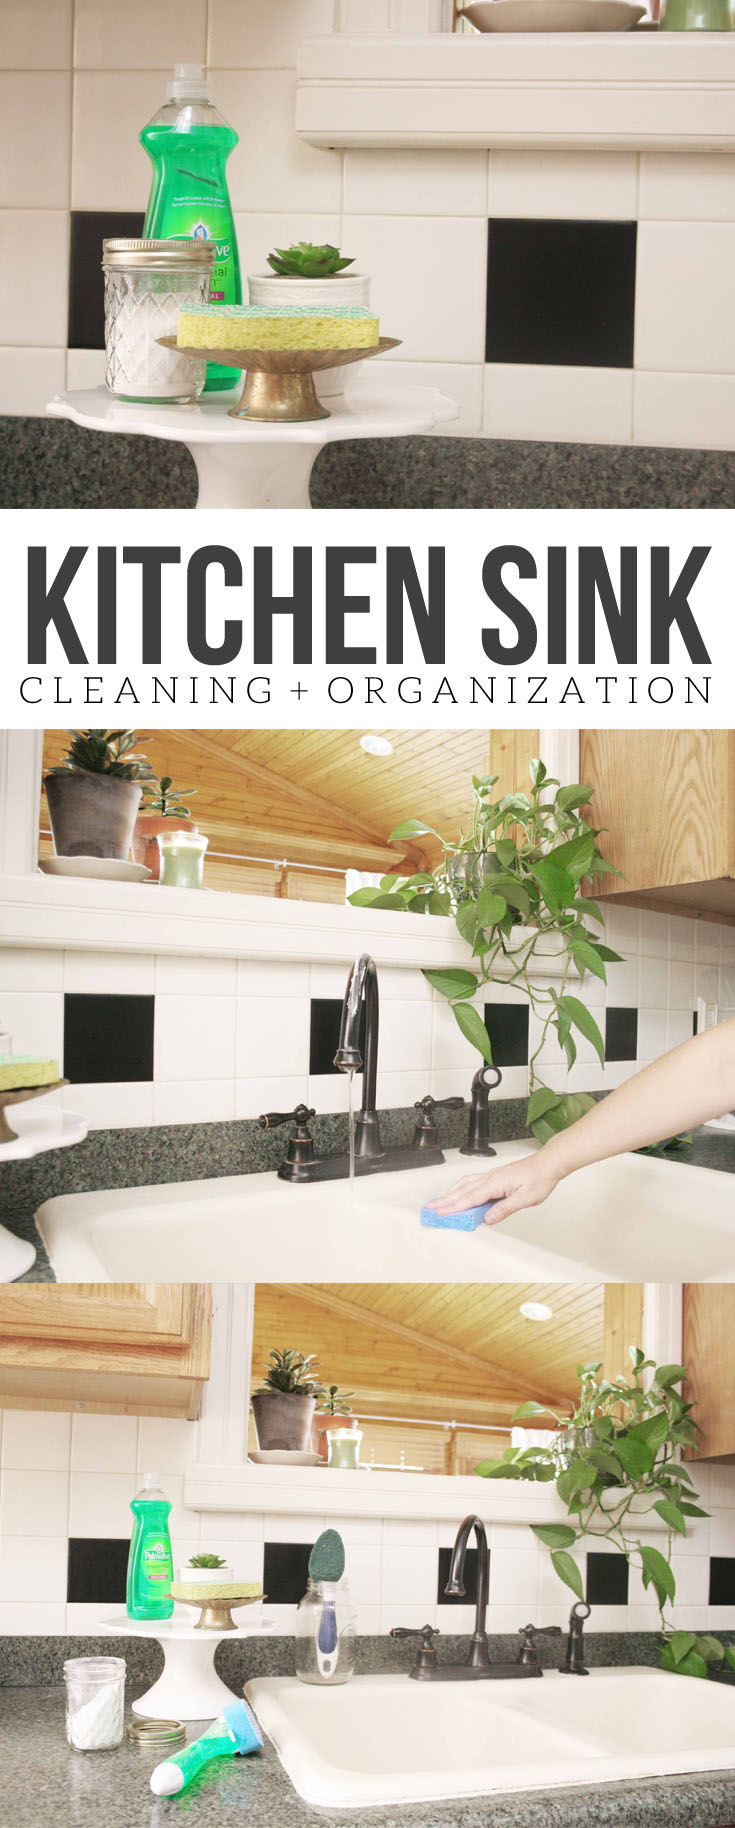 How to keep the Kitchen Sink Clean and Organized, Kitchen Sink Cleaning, Kitchen Sink Organization, Farmhouse Style Faucet, Oil Rubbed Bronze, Gooseneck, Farmhouse Sink #farmhousestyle #farmhouse #kitchen